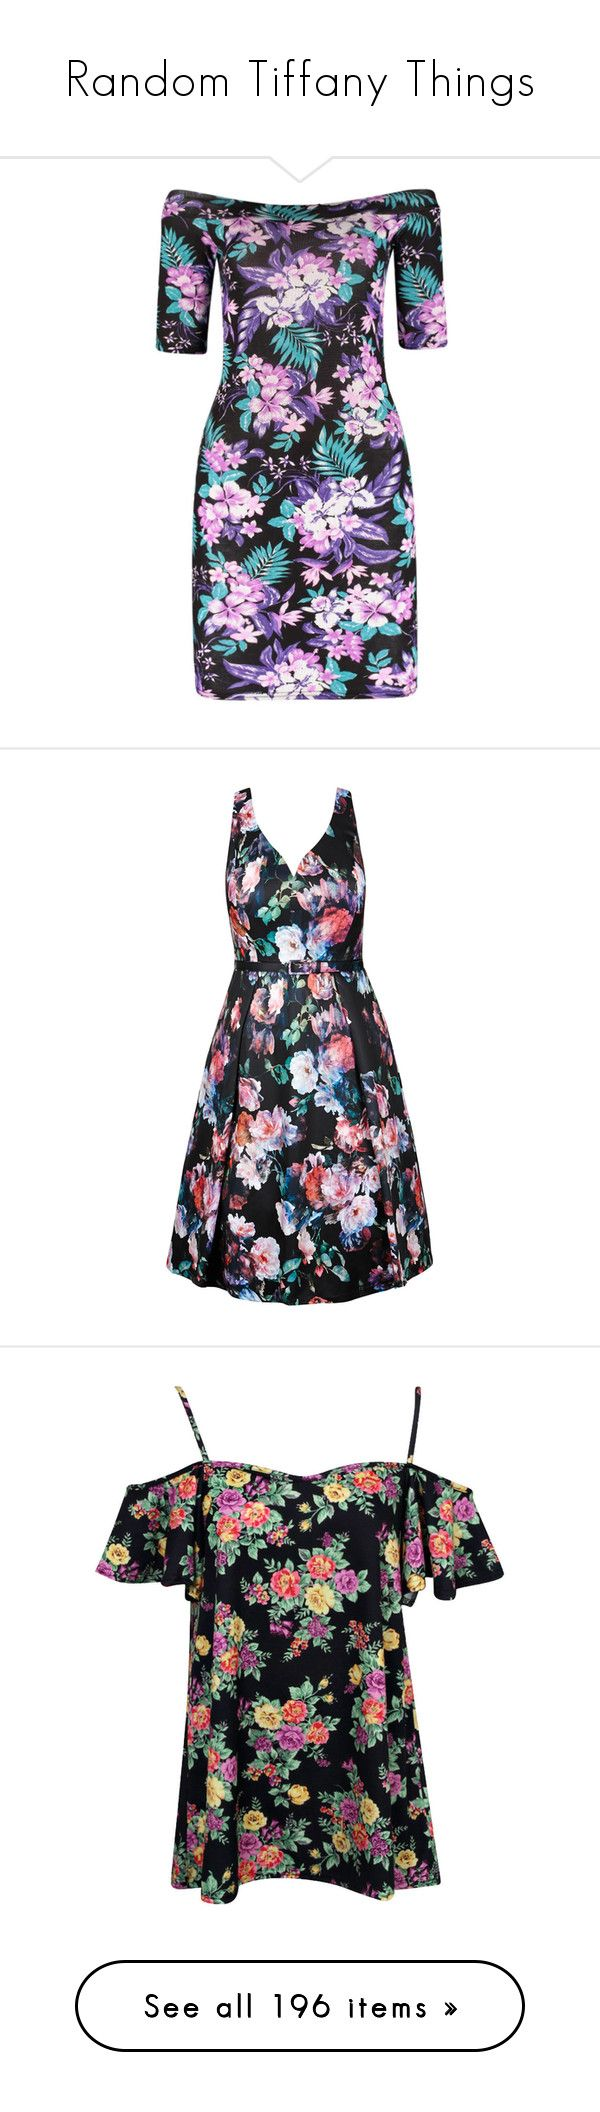 """""""Random Tiffany Things"""" by atomik-concia ❤ liked on Polyvore featuring dresses, floral midi dress, off the shoulder midi dress, floral bodycon dresses, off-shoulder maxi dresses, bodycon dresses, plus size women's fashion, plus size clothing, plus size dresses and flower print dress"""